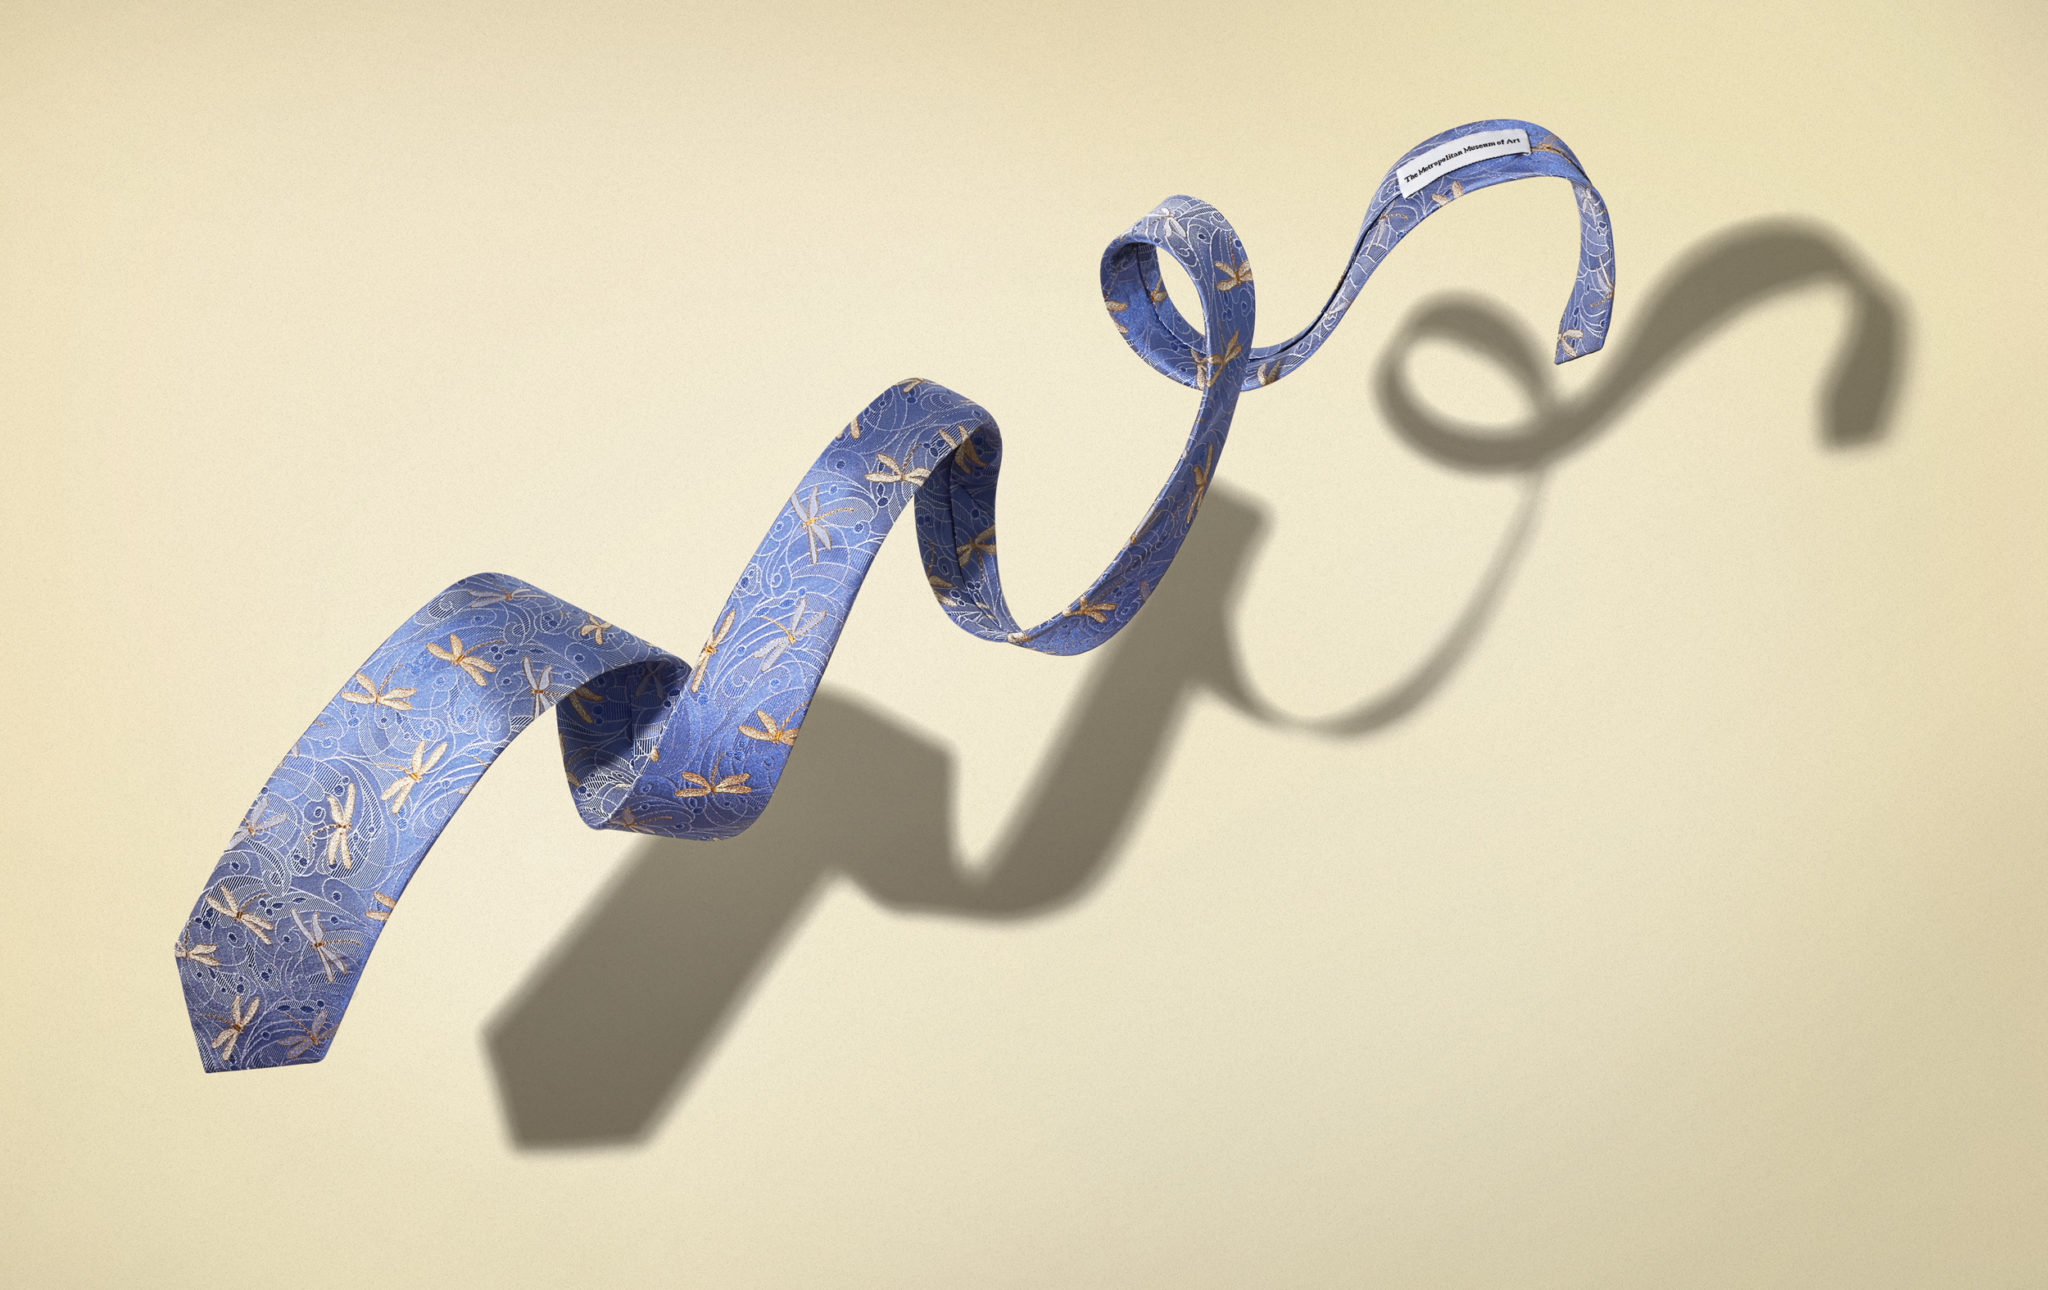 marketing photograph of a blue dragonfly print necktie floating or flying in front of a tan background.